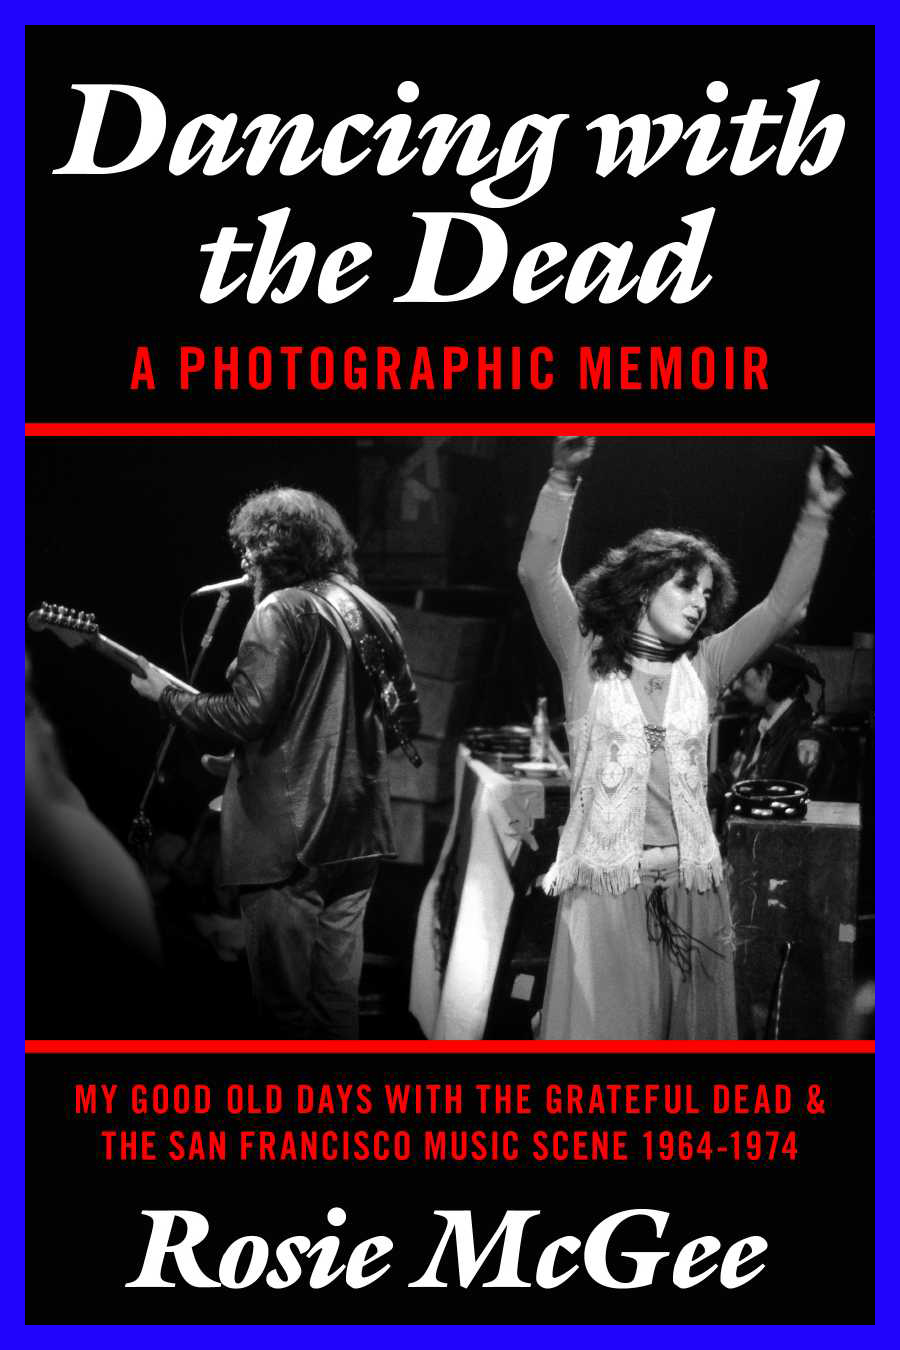 Cover image of Dancing with the Dead by Rosie McGee